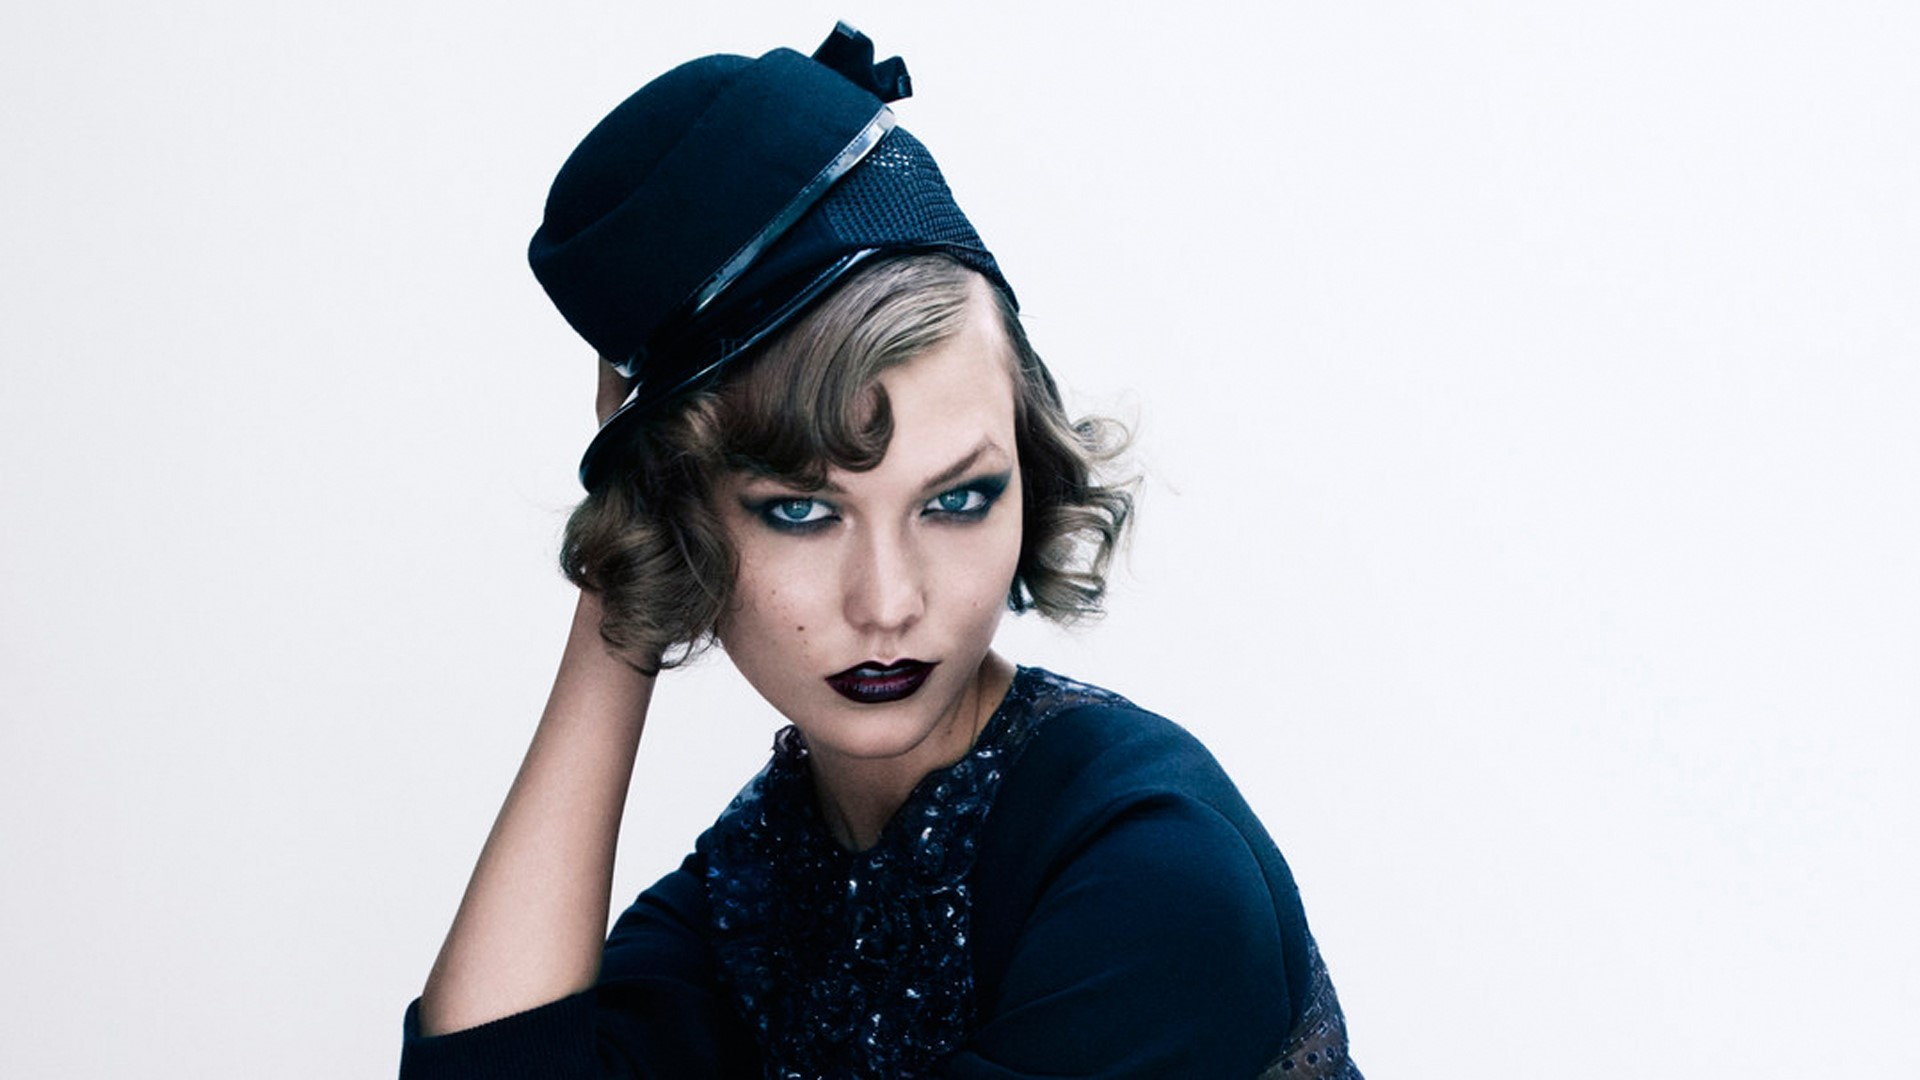 Wallpaper Karlie Kloss with a hat